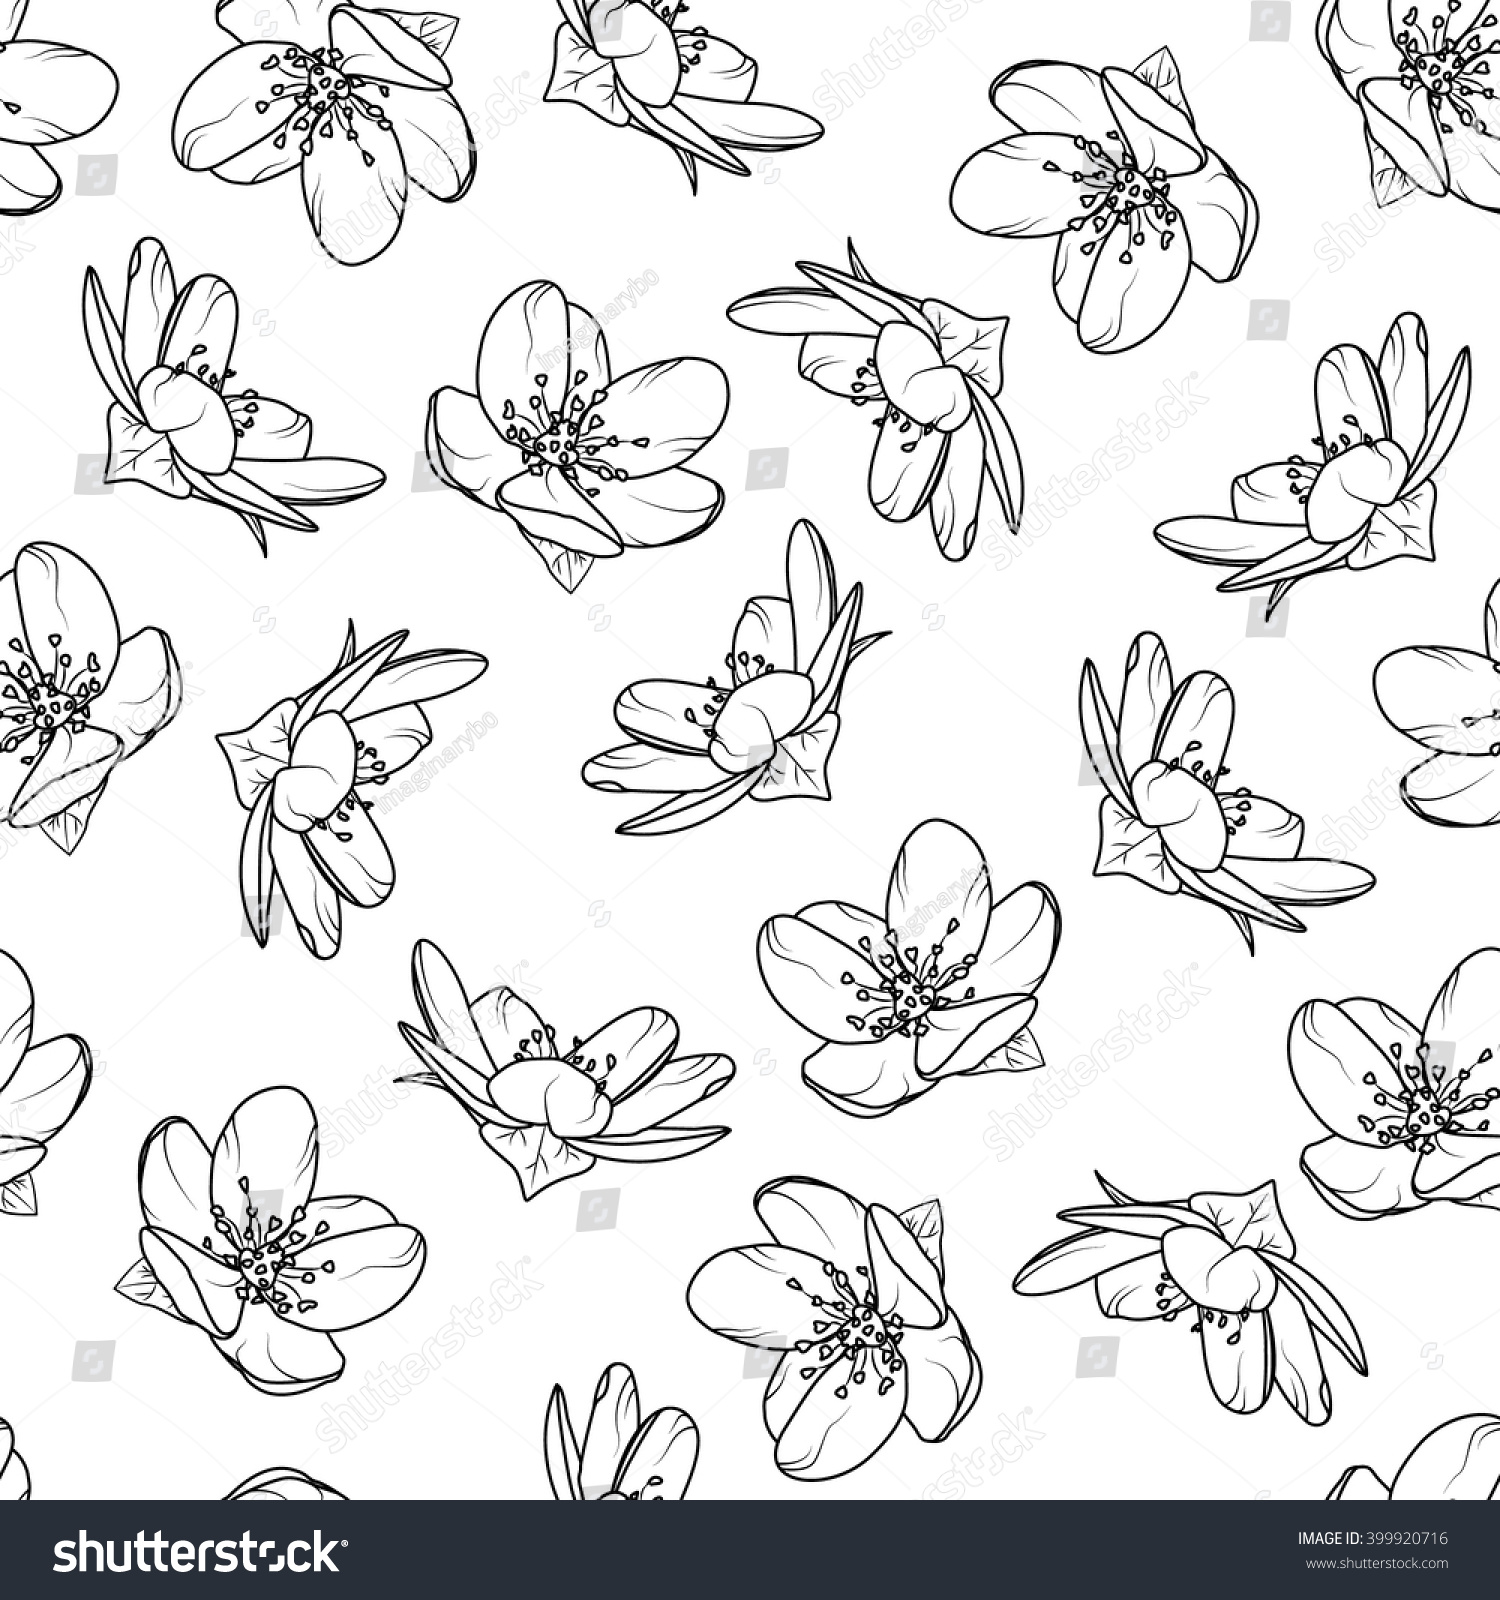 Cherry Blossom Tree Black And White: Cherry Blossom Seamless Pattern Black White Stock Vector